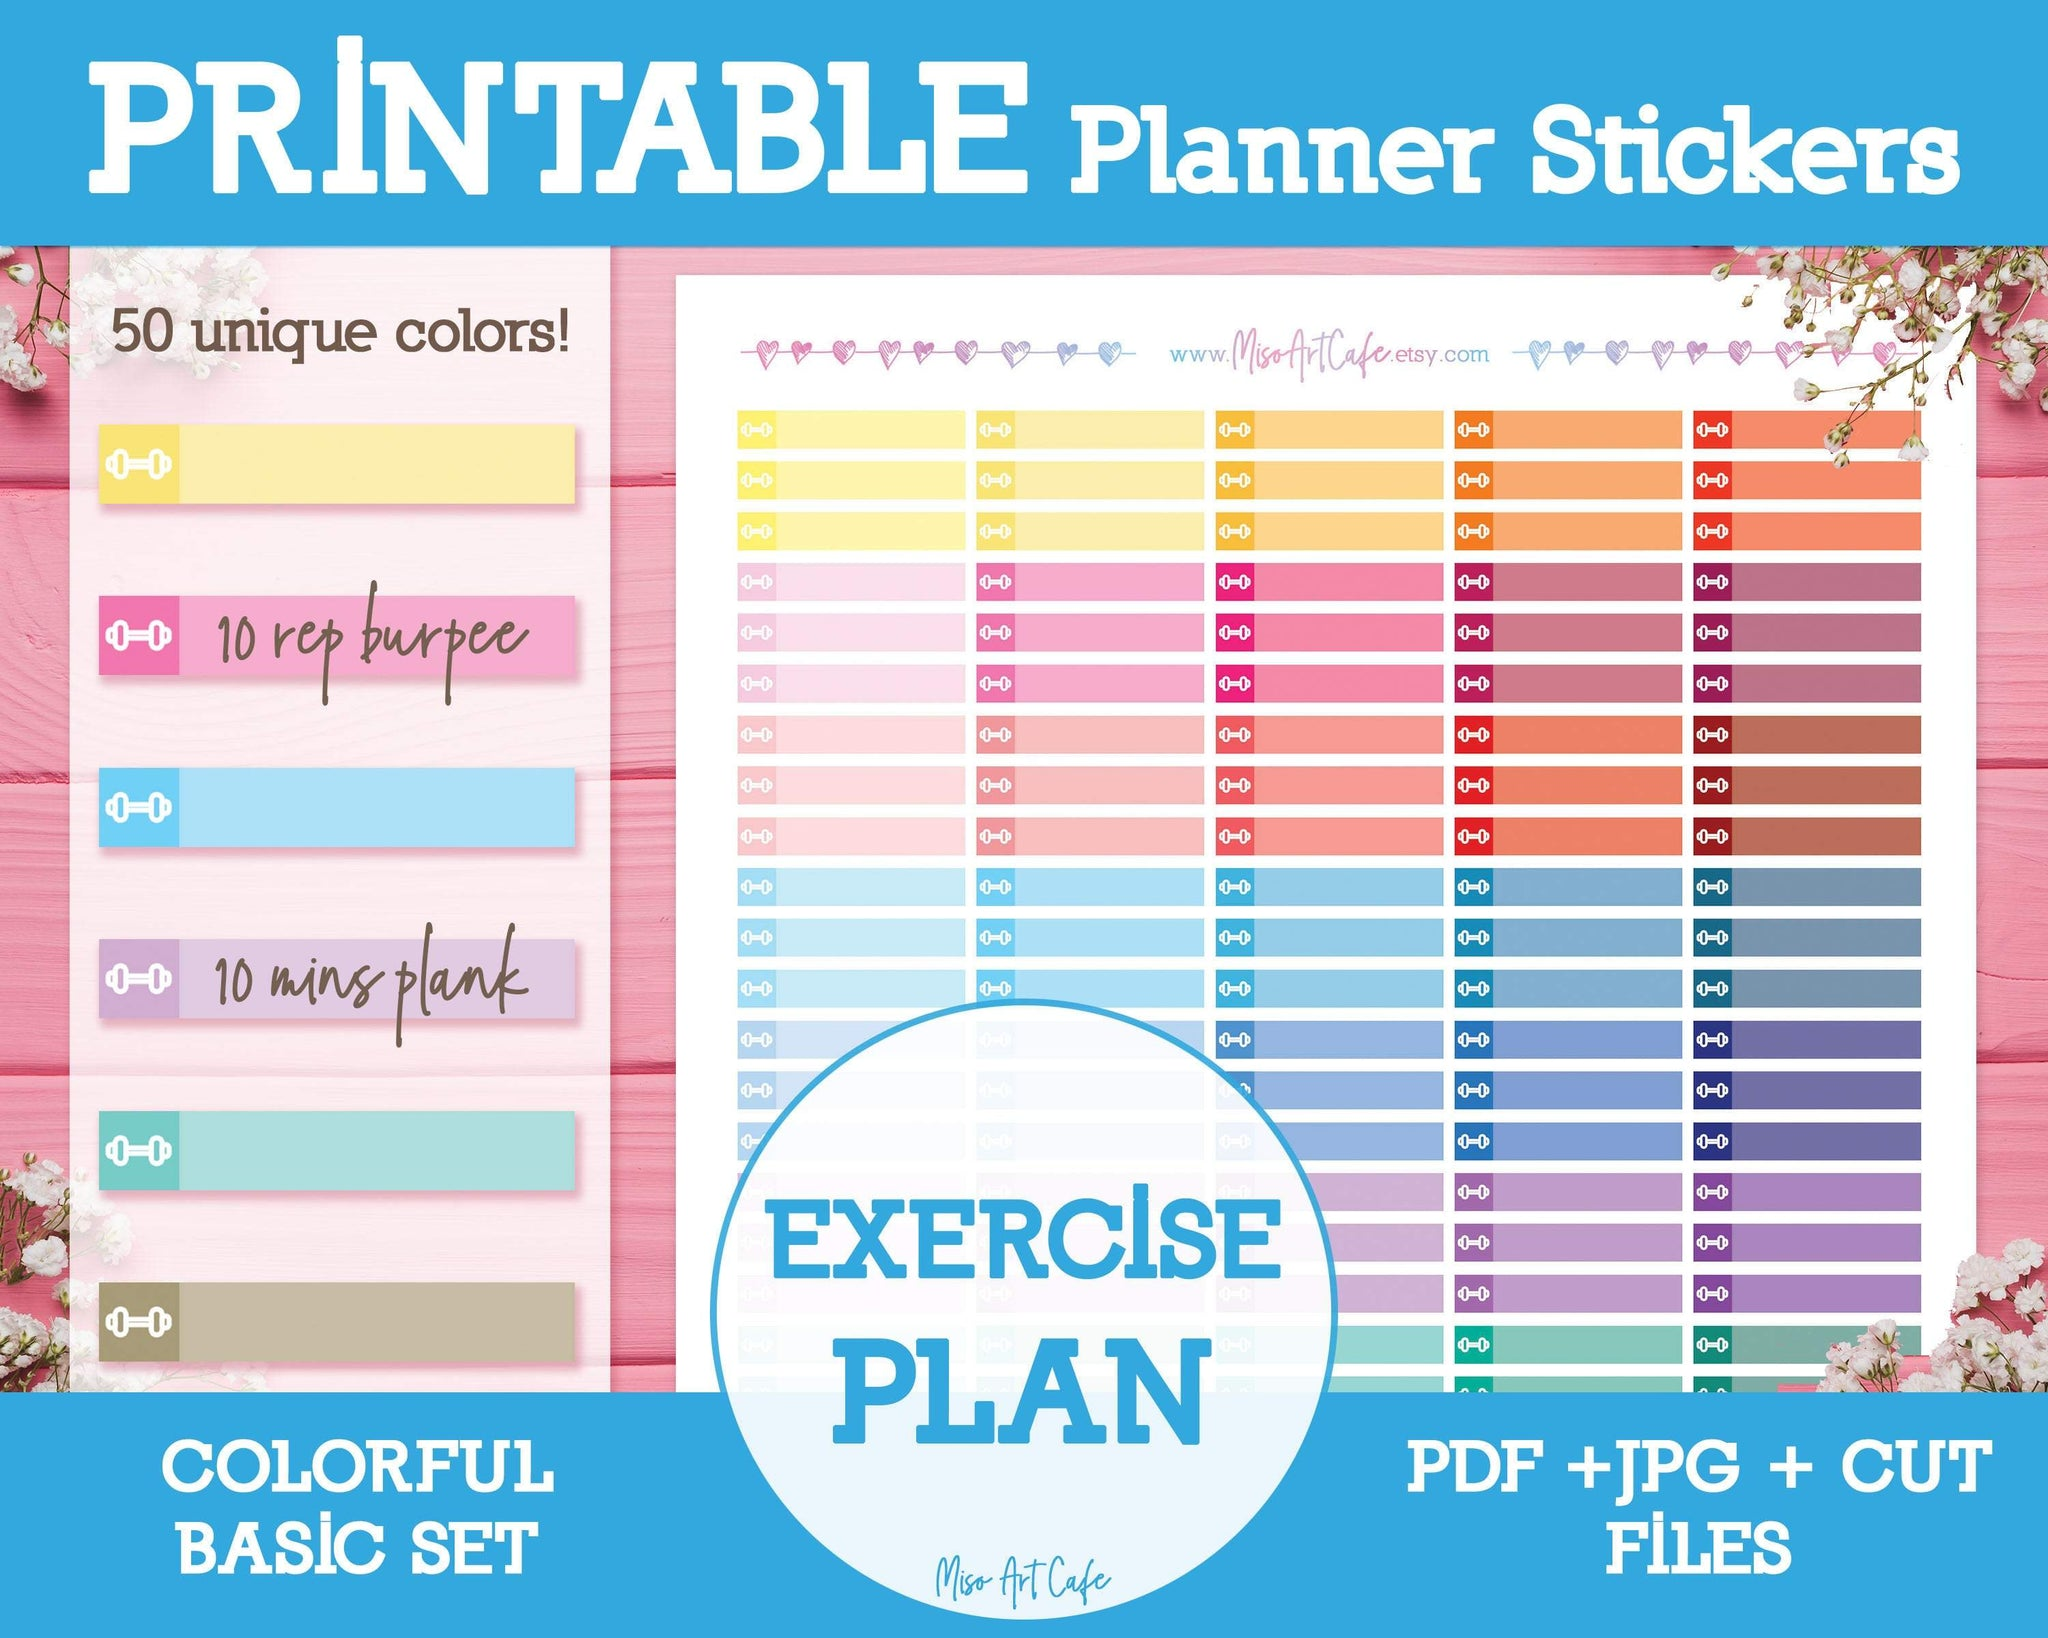 Printable Exercise Plan Lists - Colorful Basic Planner Stickers - Miso Art Cafe